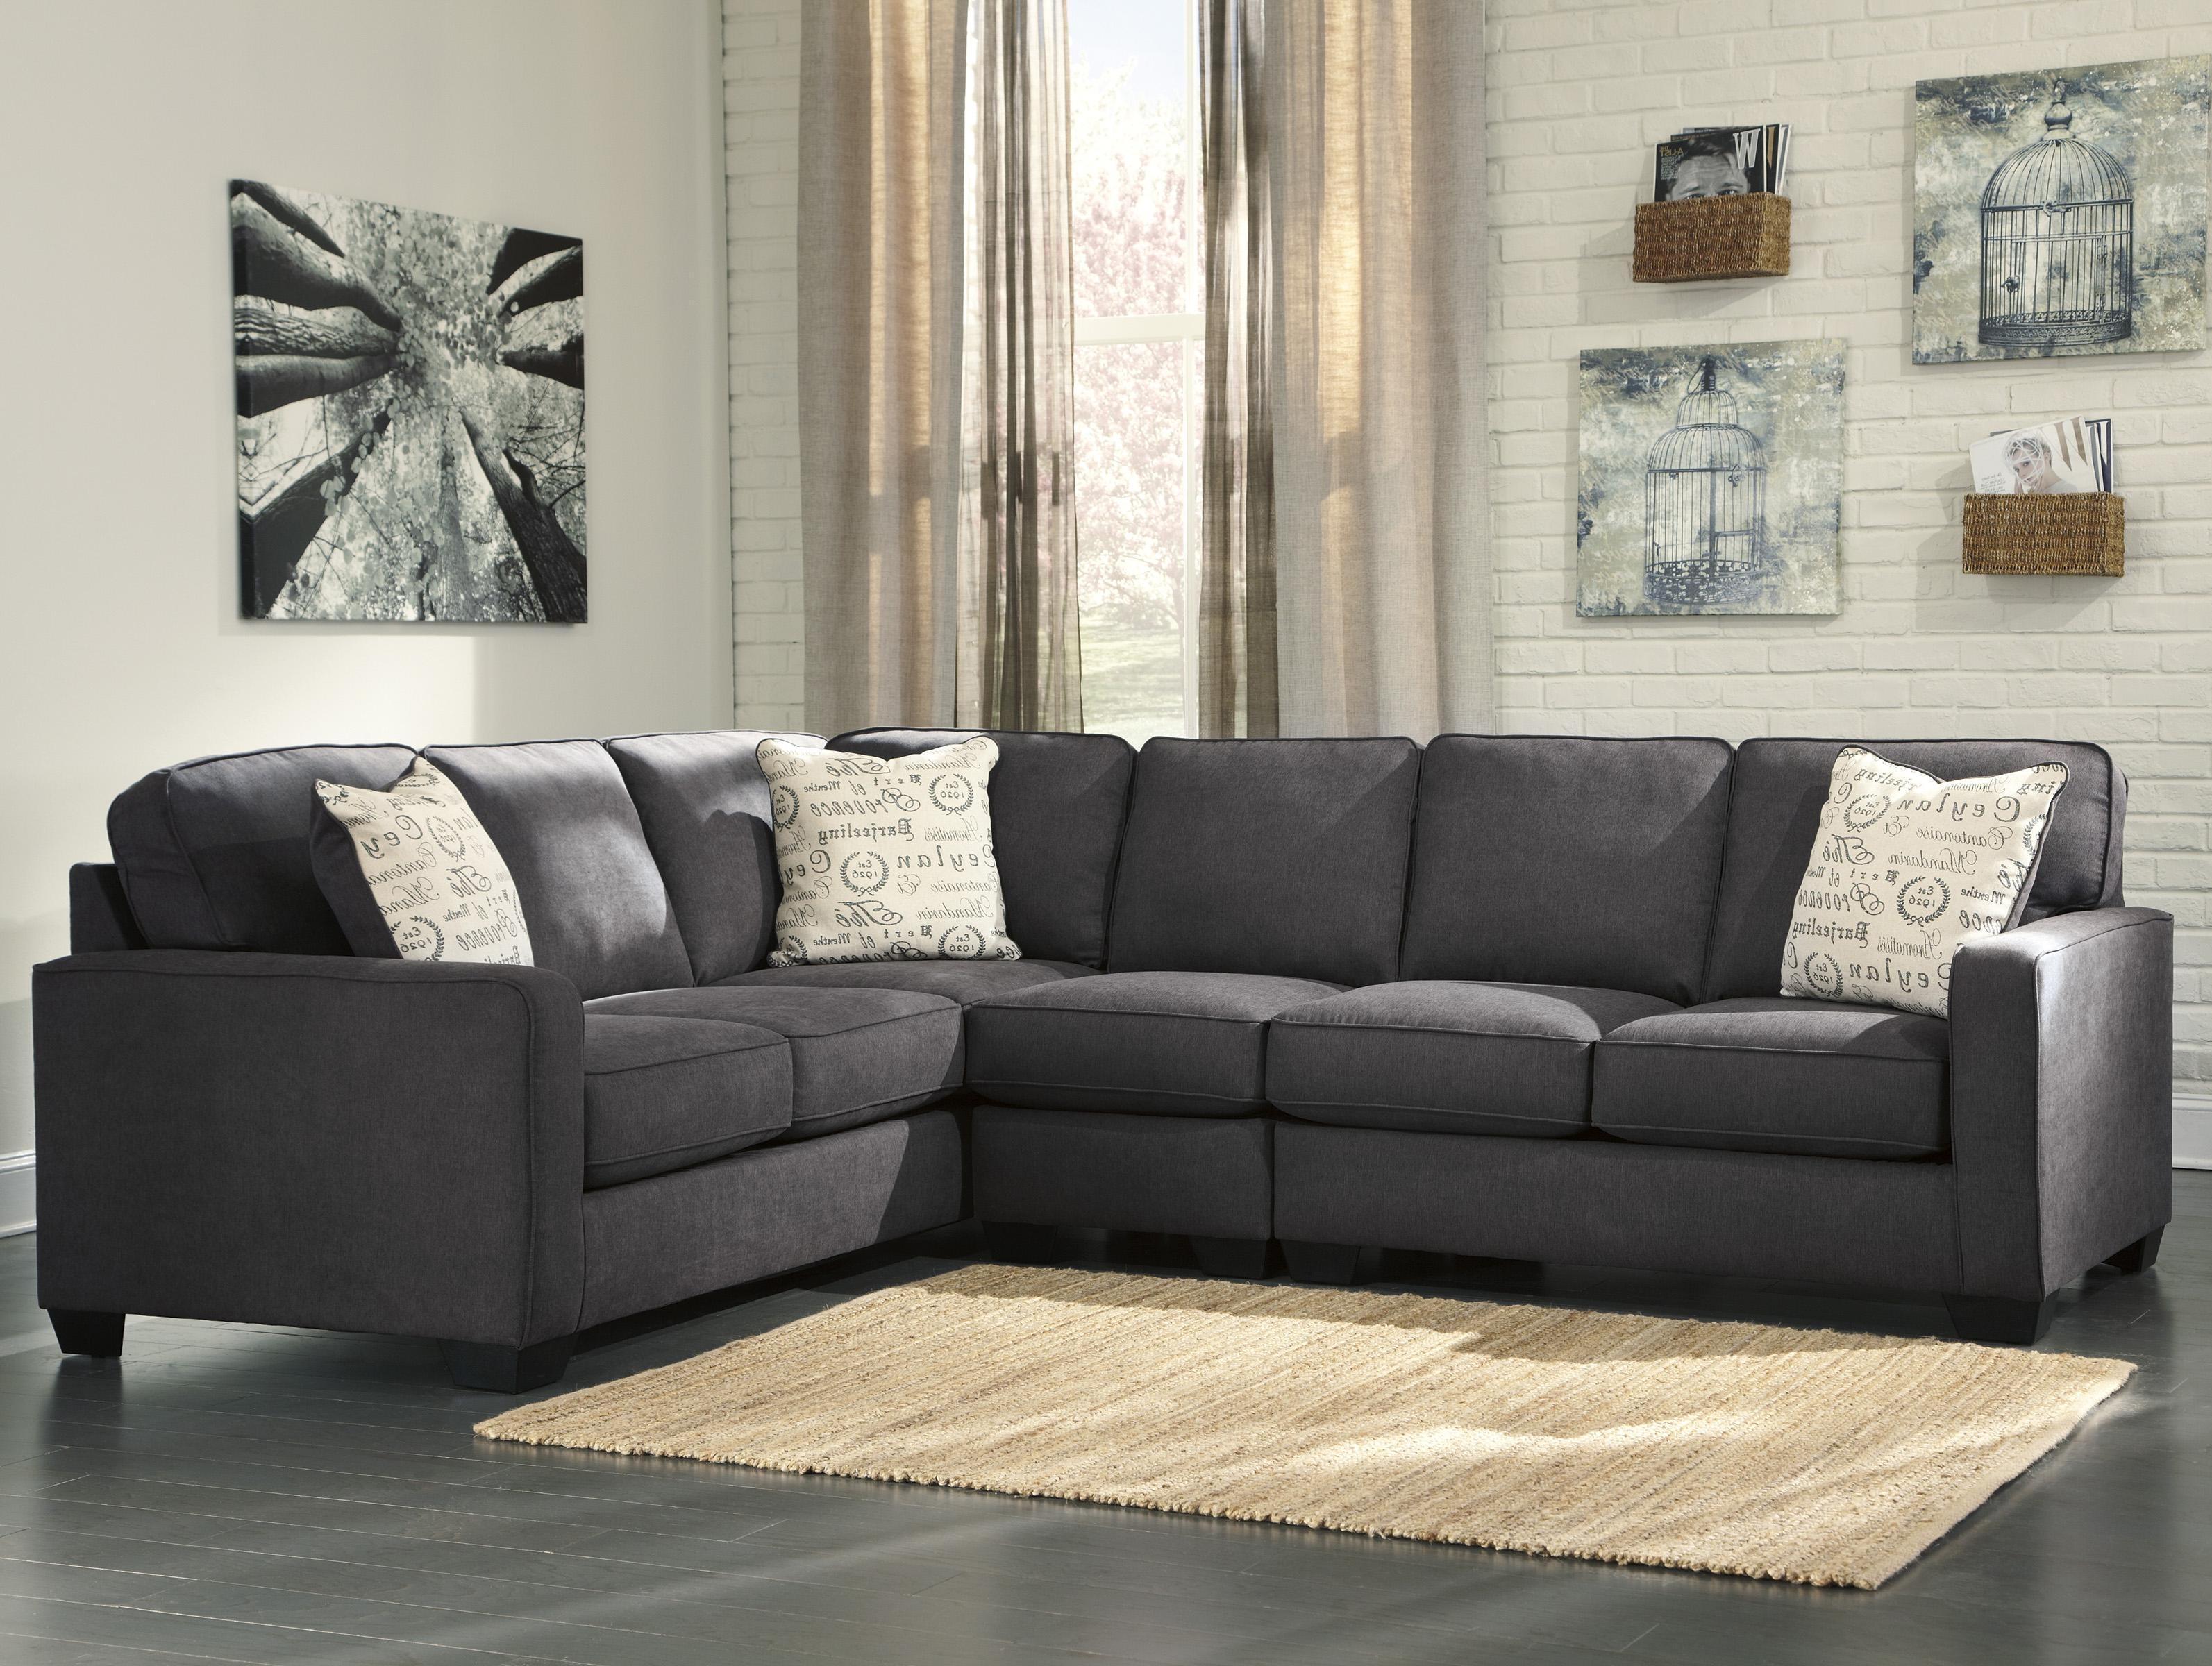 Sofas : Awesome Small Sectional Microfiber Sectional Couch Throughout Small 2 Piece Sectional Sofas (Image 12 of 23)